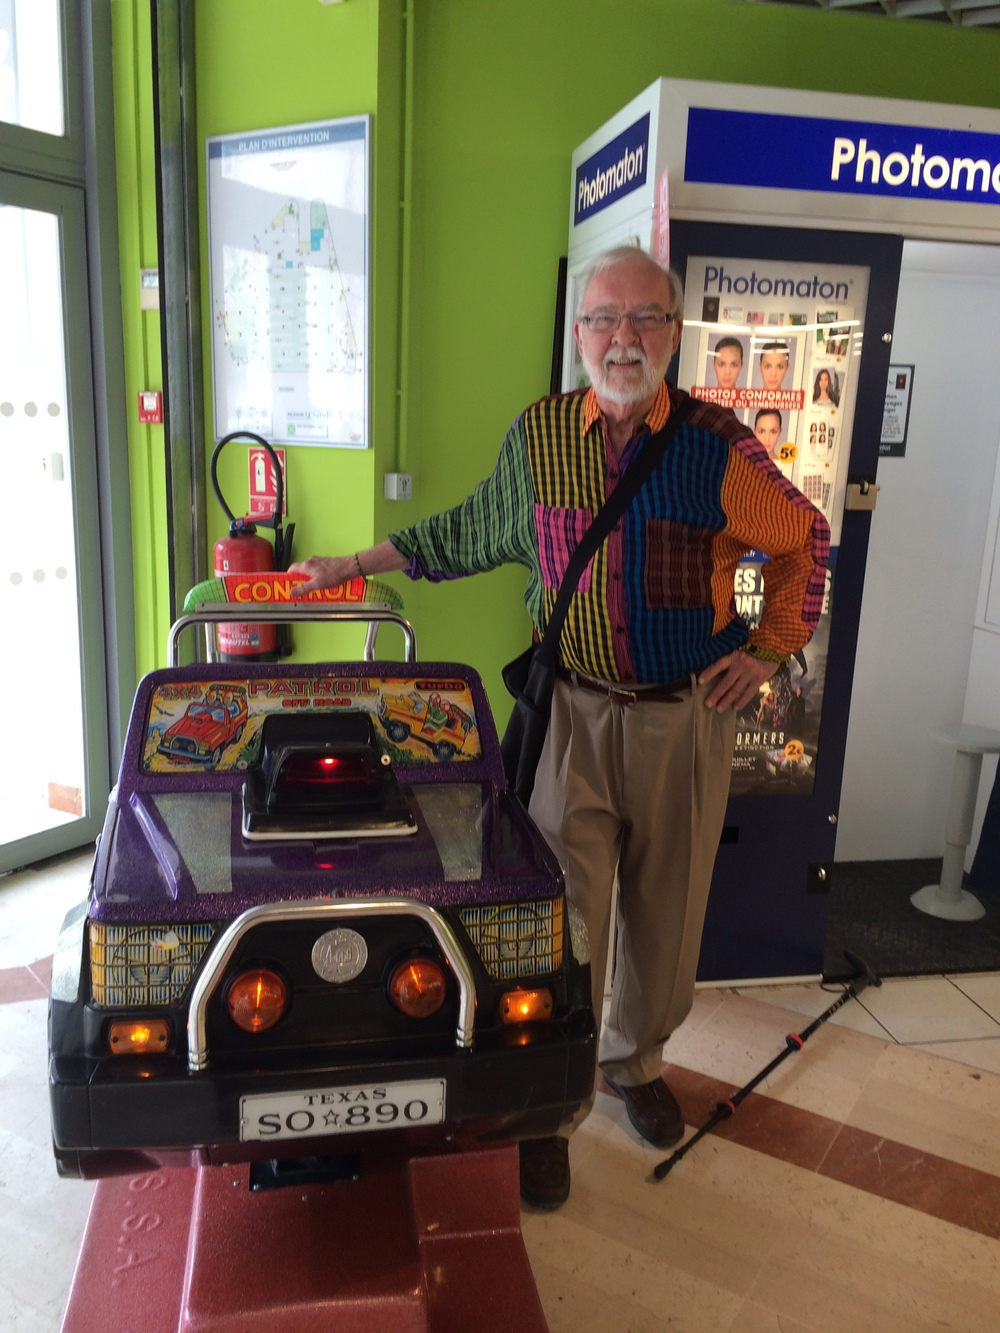 I couldn't resist posing, in France!, by this children's ride in a super market here. I was going to claim it was my method of transportation. Notice the Texas license plate.